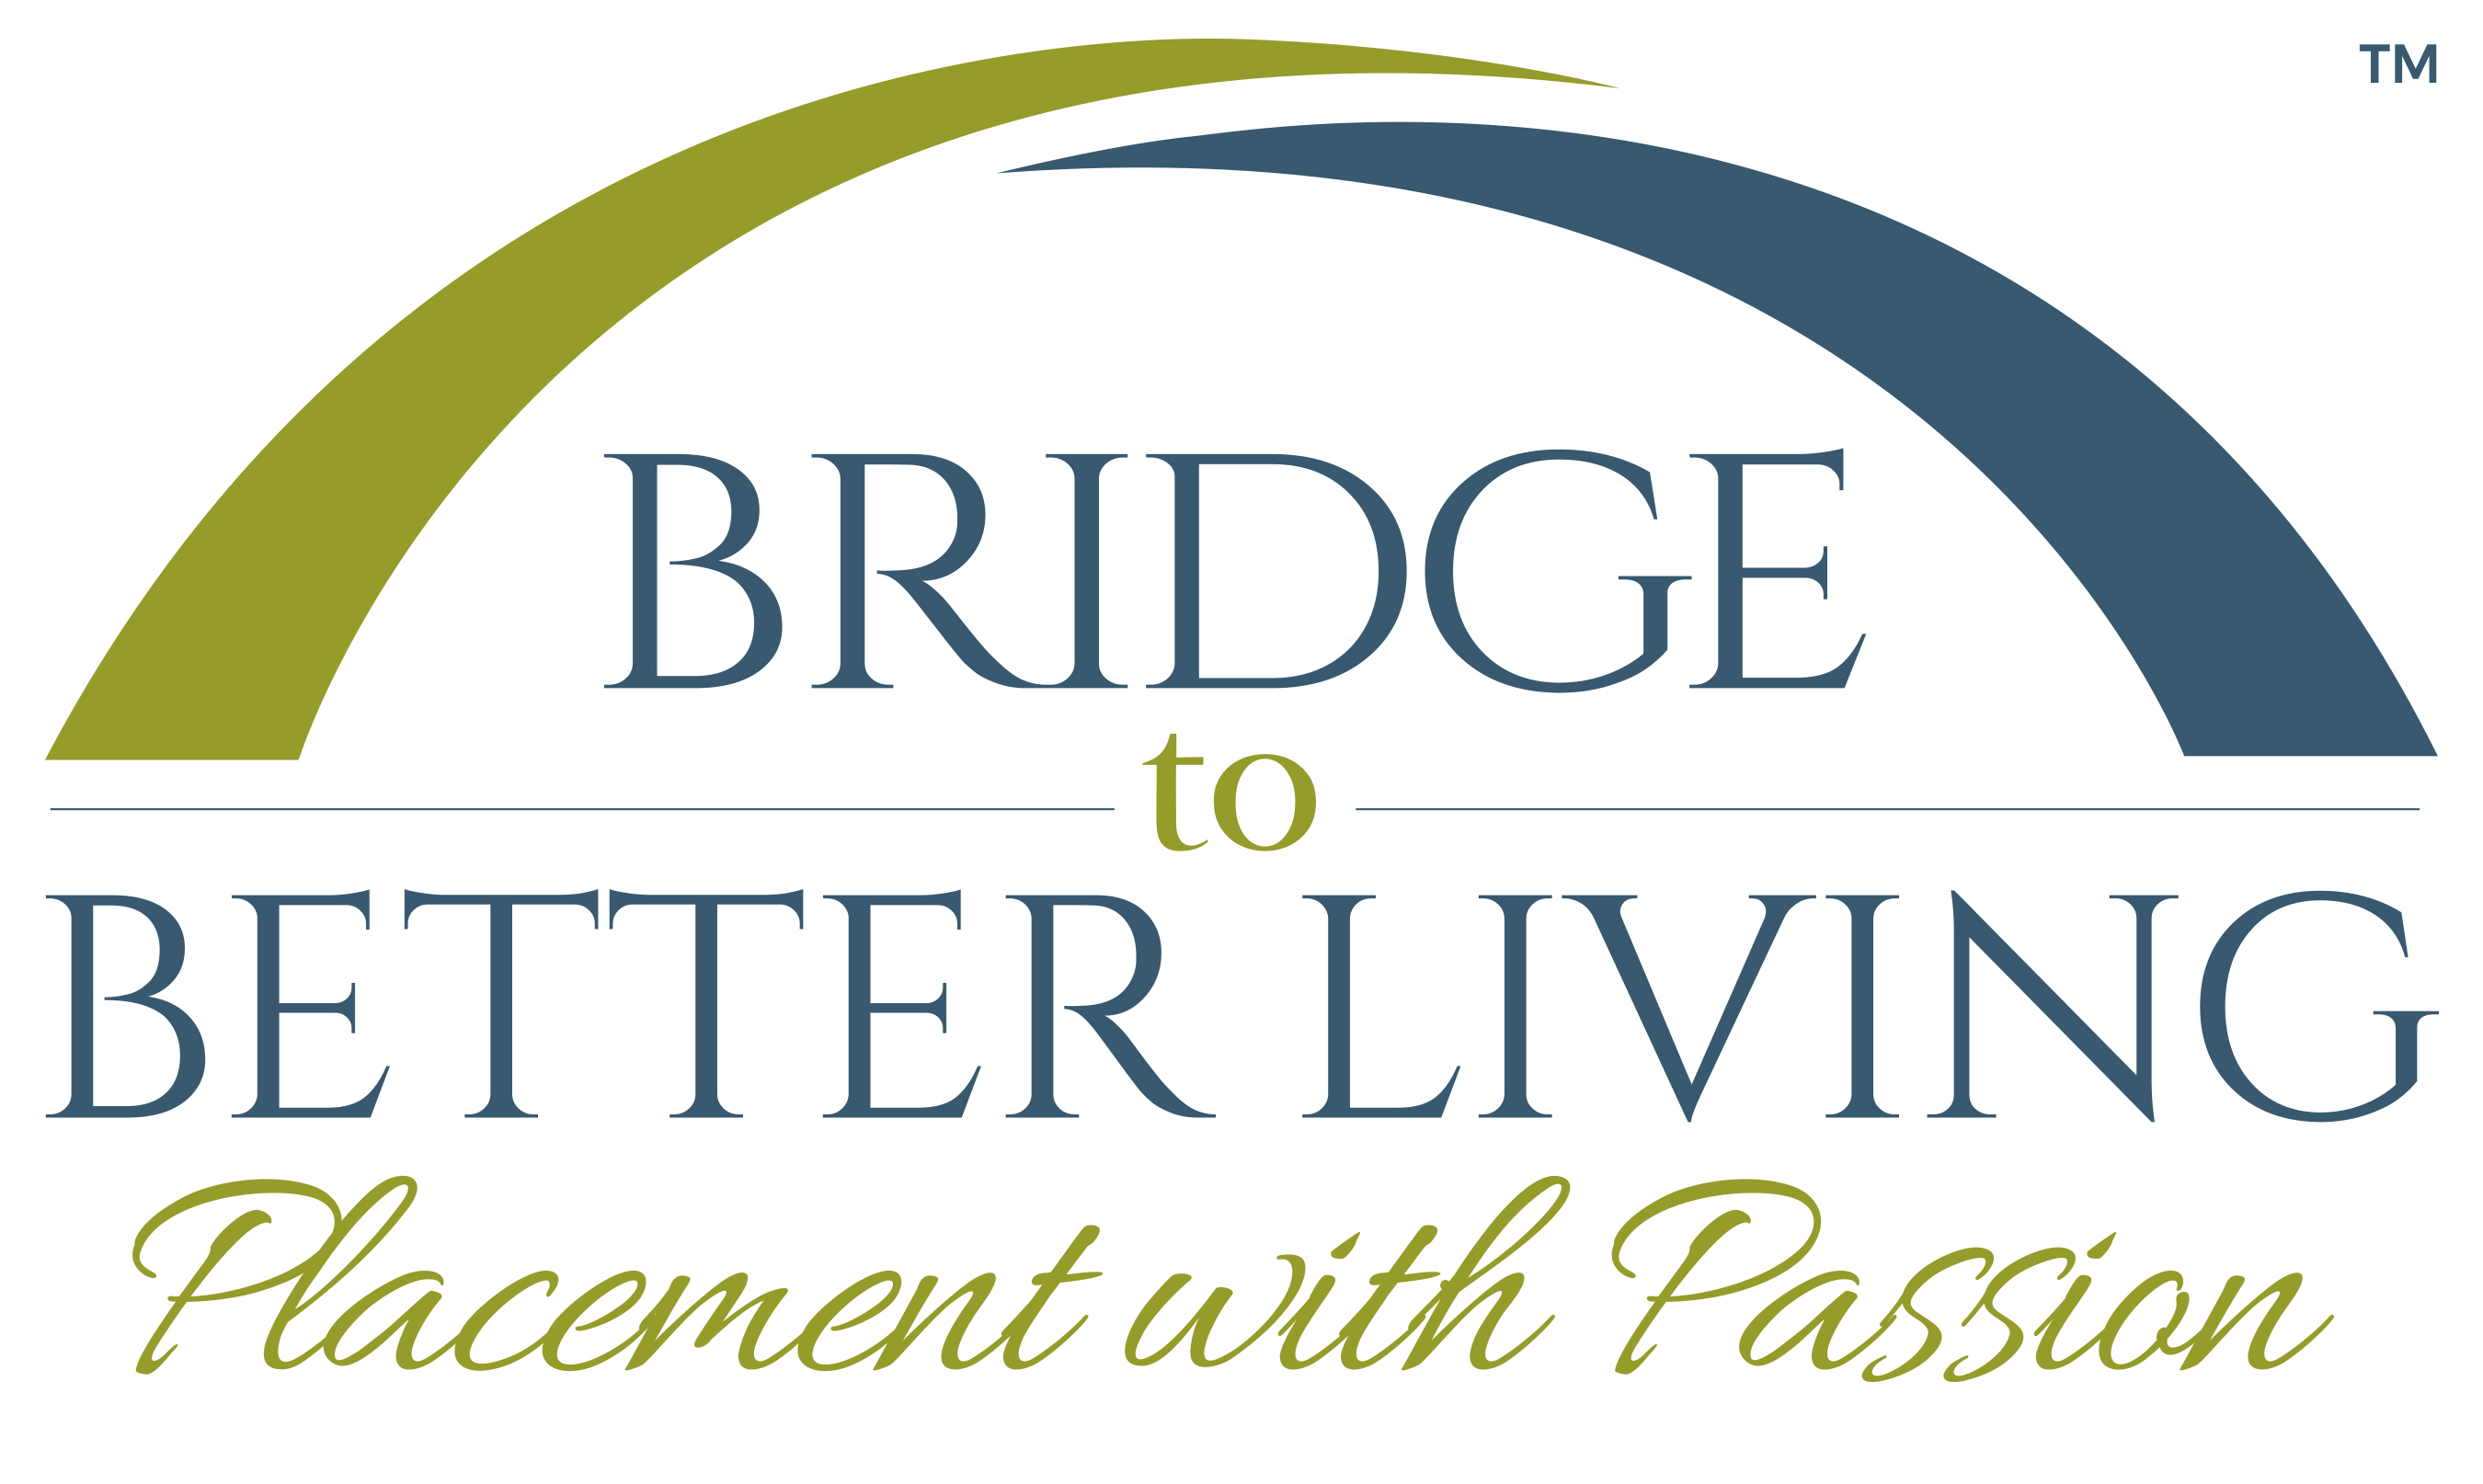 Assisted Living Transition Consultants | Placement with Passion | Bridge to Better Living